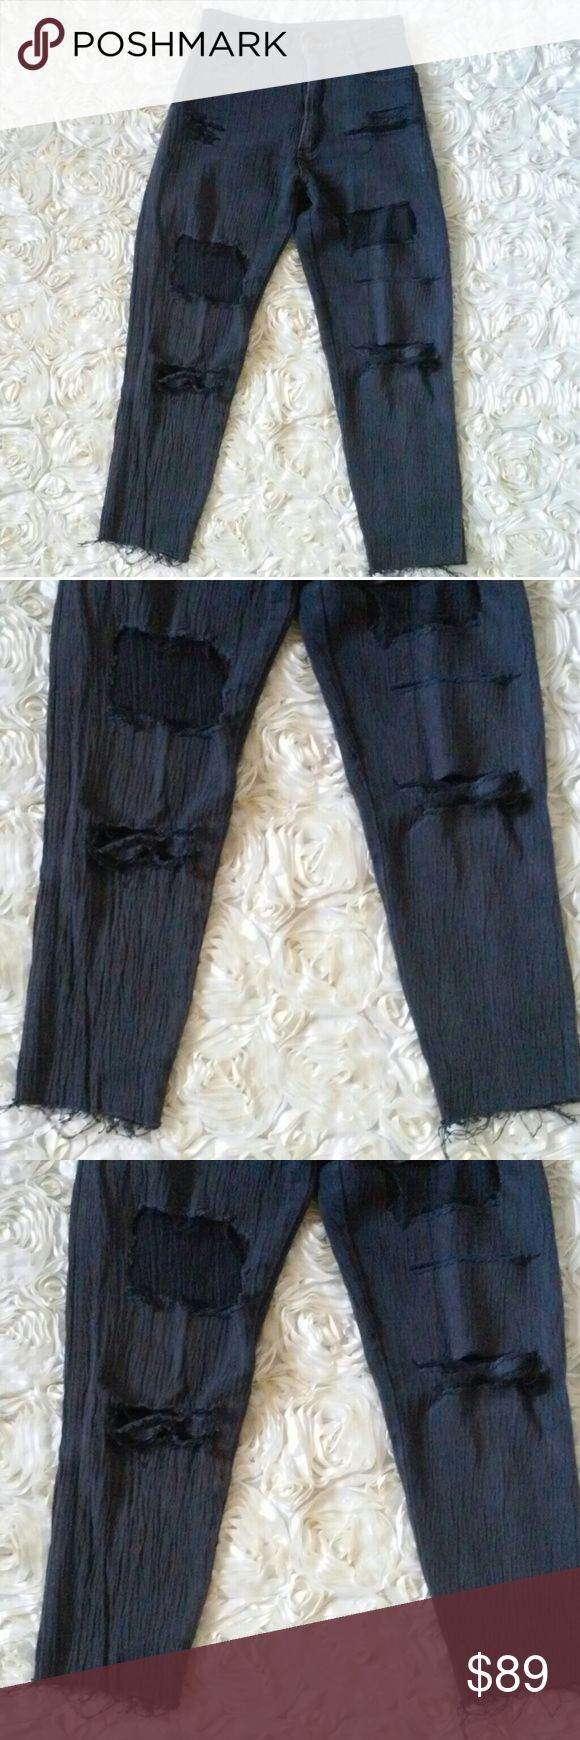 """coolest 80s KELIN rock hipster black ripped jeans This pair of jeans is literally the definition of the modern trendy raw hem ripped rocker hipster denim and it's vintage! Made by Kelin, are a perfect faded black with a ruddy texture throughout and a high waist. Good pre-owned condition. Labeled size 7/8 but definitely an XS to small. 34"""" long, 25"""" inseam, 11"""" waist drop, 27.5"""" around waist band. Cotton rayon polyester spandex blend. Kelin Jeans Ankle & Cropped"""